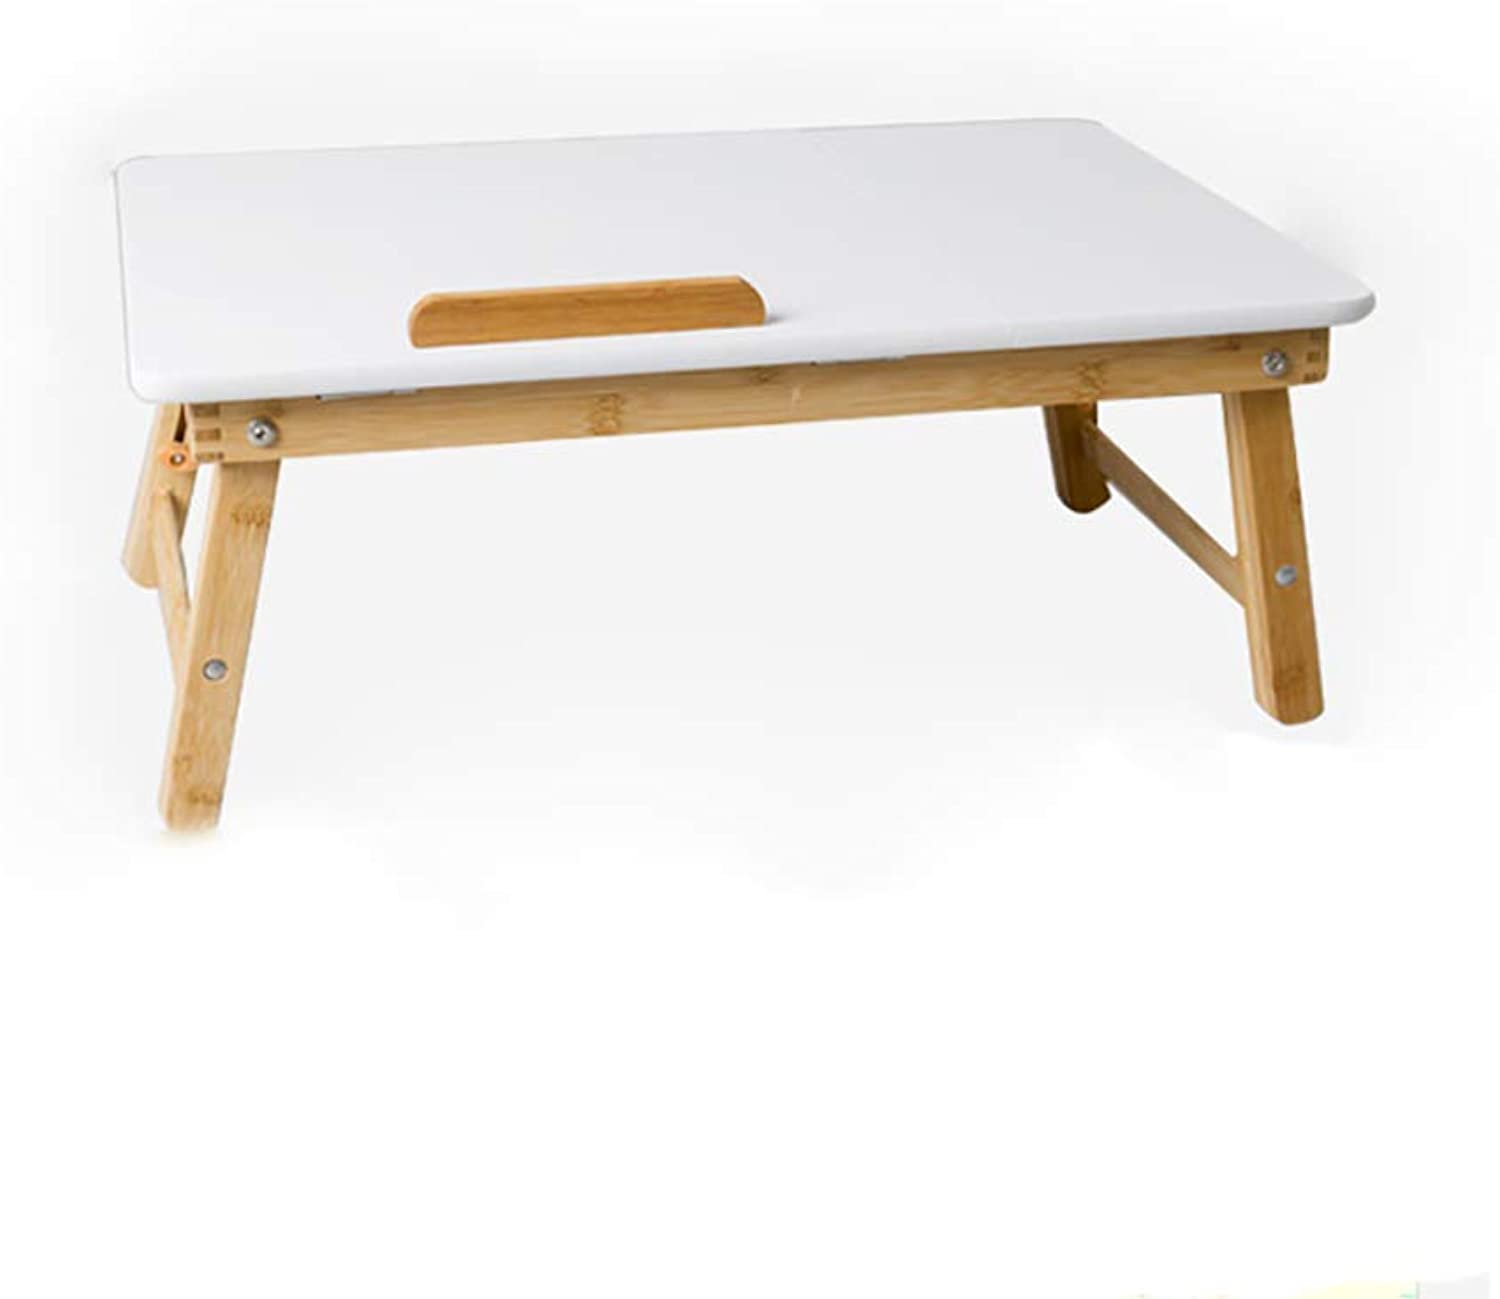 Hai Yan Portable Folding Table Folding Table - Bed Small Table Laptop Table Learning Mini Table Desk Lazy Girl Student Folding Lift Table (Size   70x34x31cm)